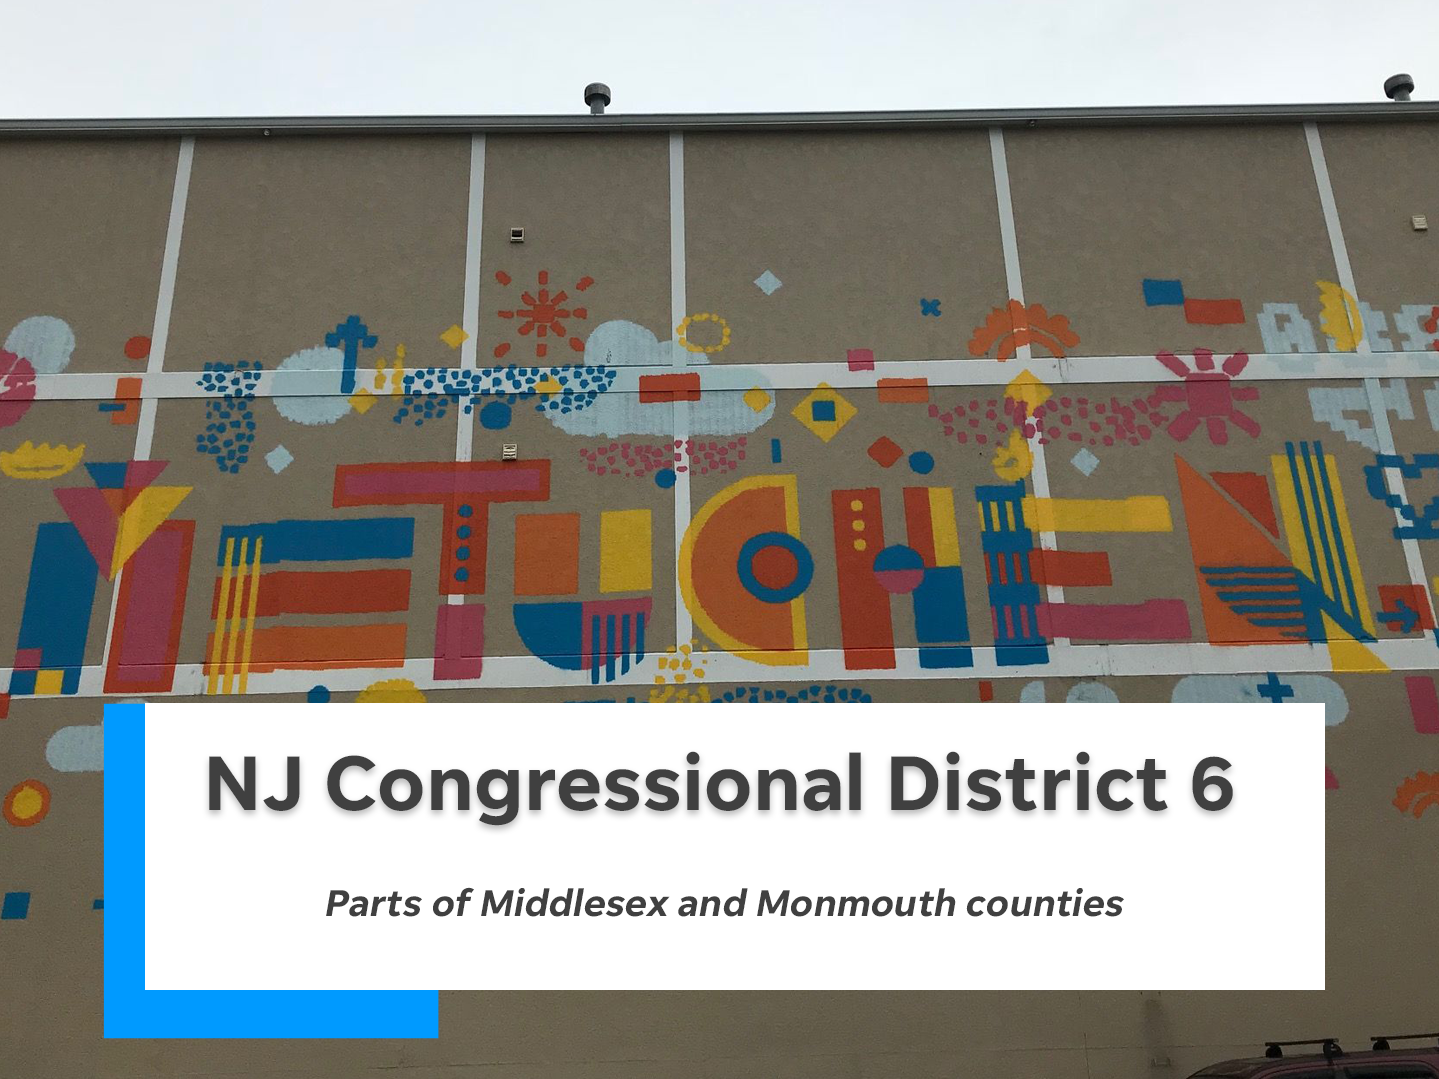 NJ's sixth congressional district is comprised of parts of Middlesex and Monmouth counties